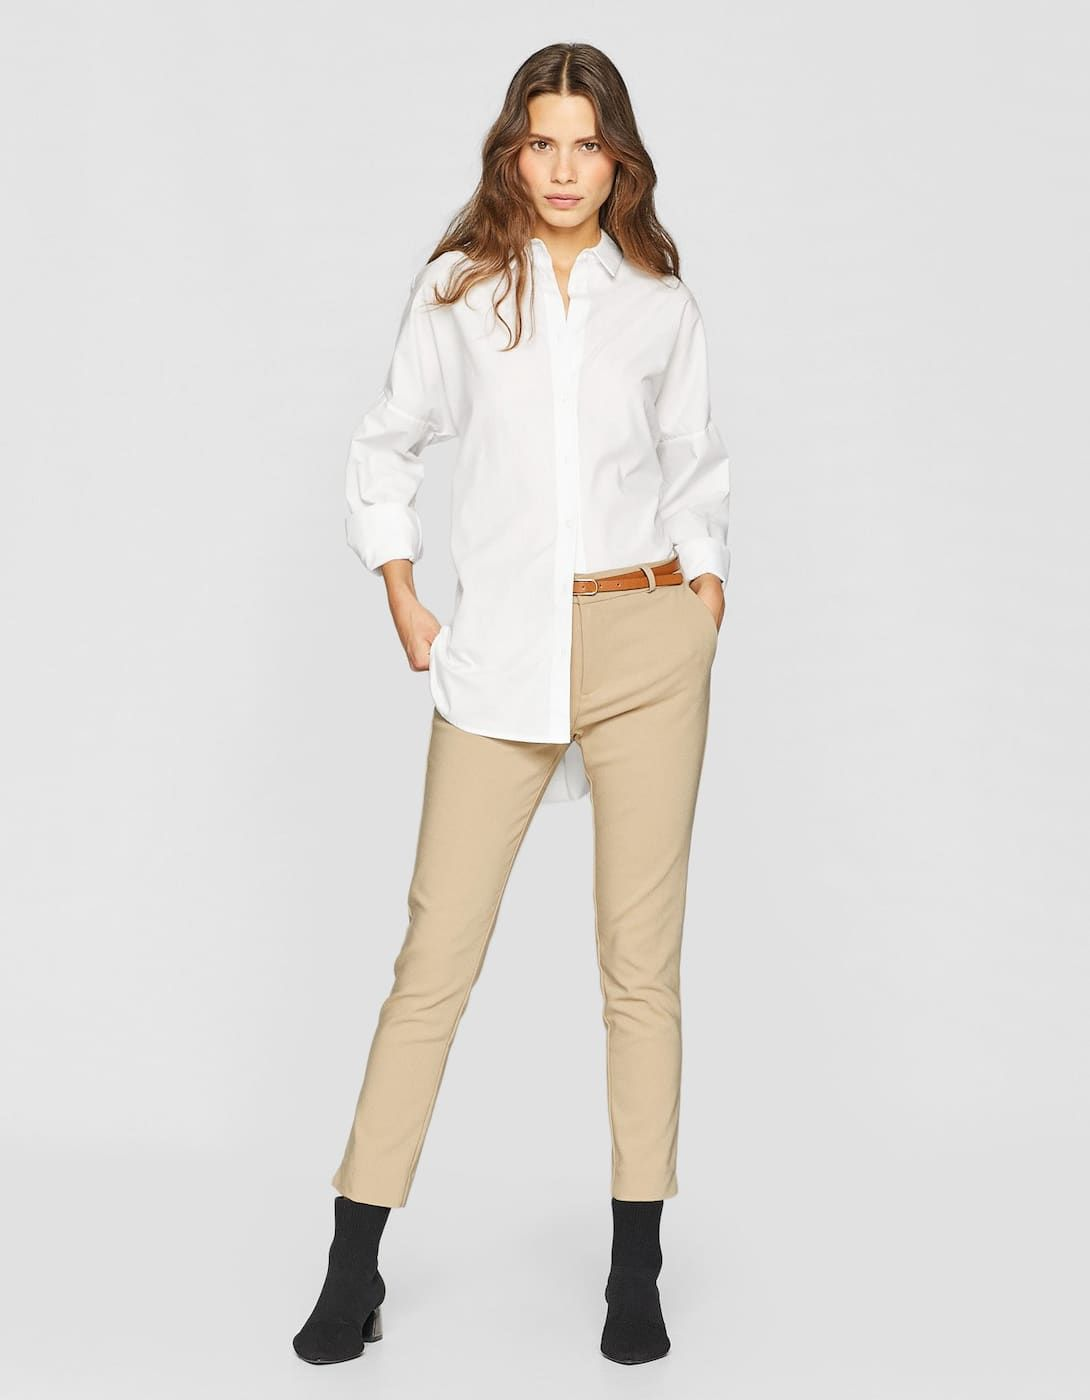 Smart Trousers With Belt Trousers Stradivarius Italy 20 Clothes Stradivarius Trousers